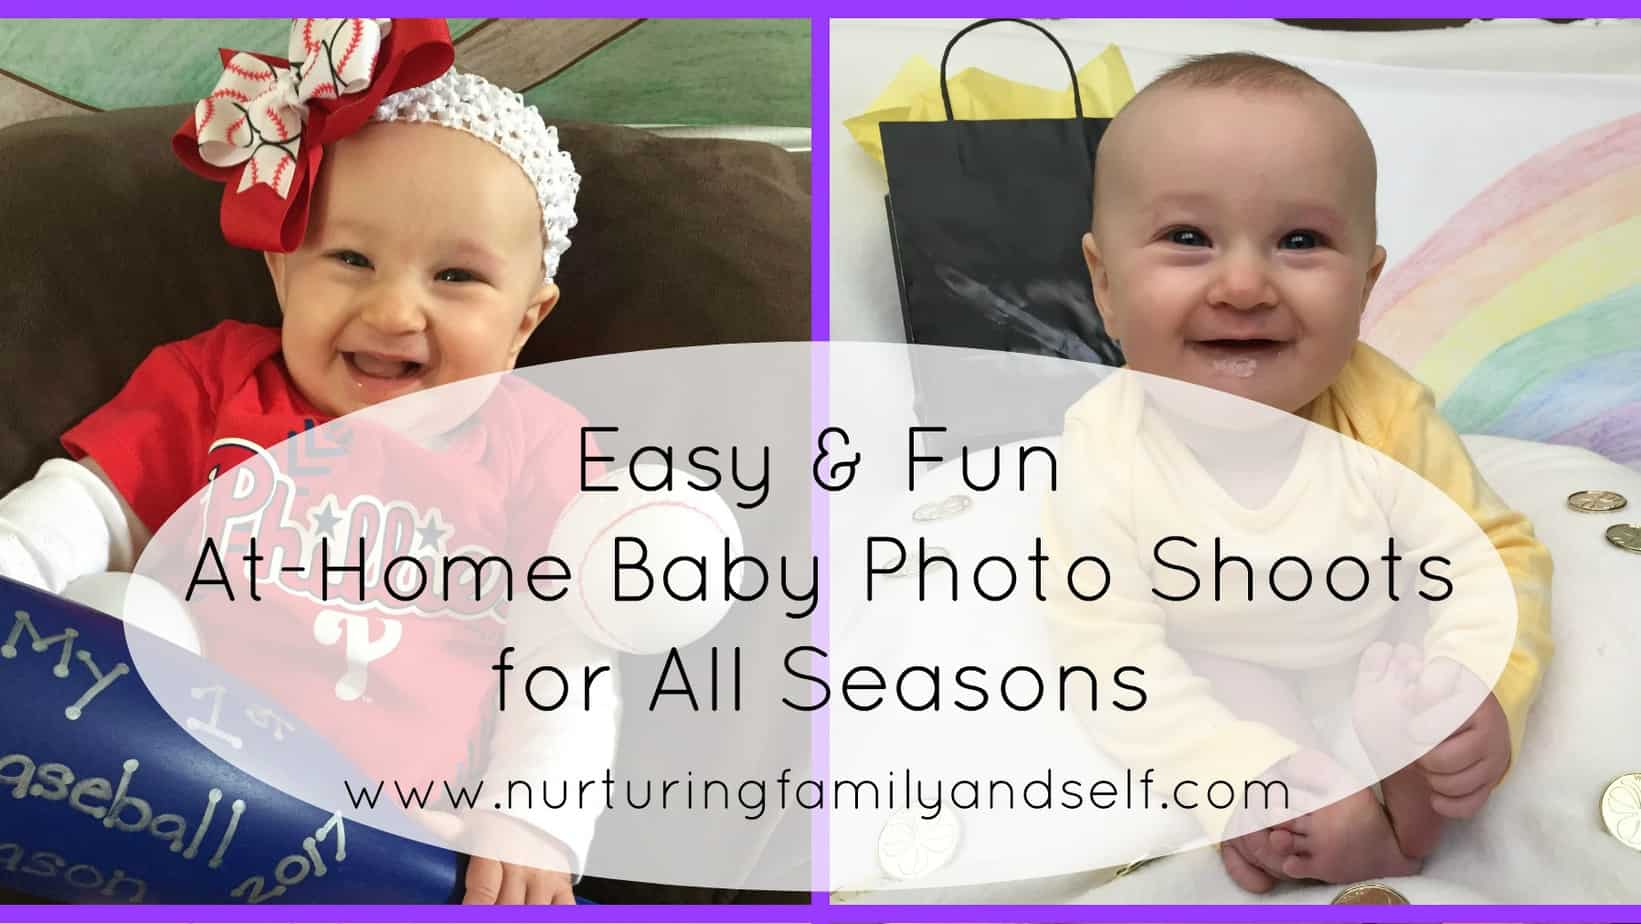 Easy & Fun At-Home Baby Photo Shoots for All Seasons - Nurturing ...